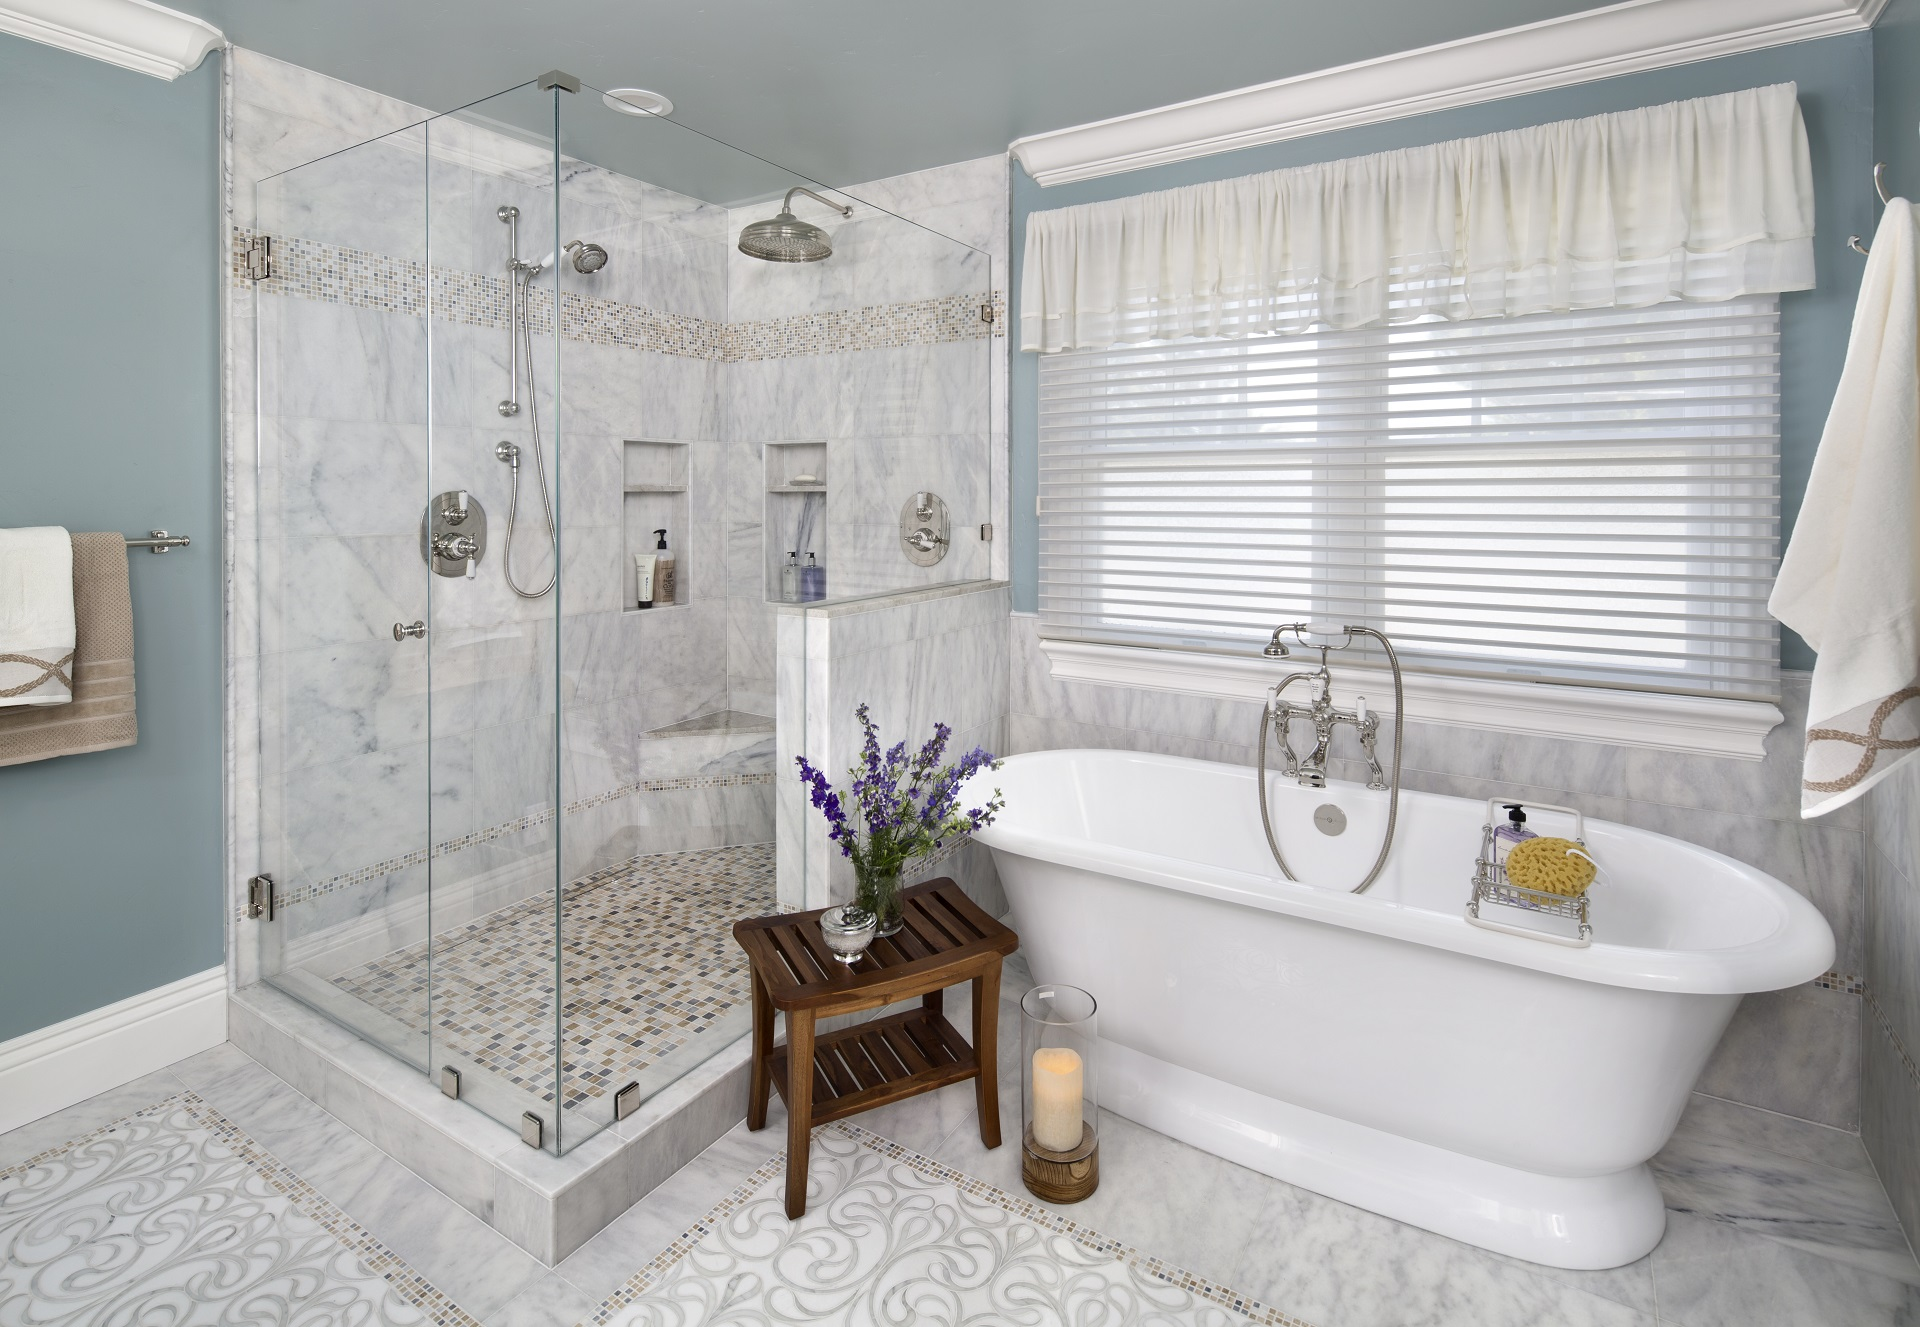 the glass enclosed shower and freestanding tub for the master bathroom remodel by valley home